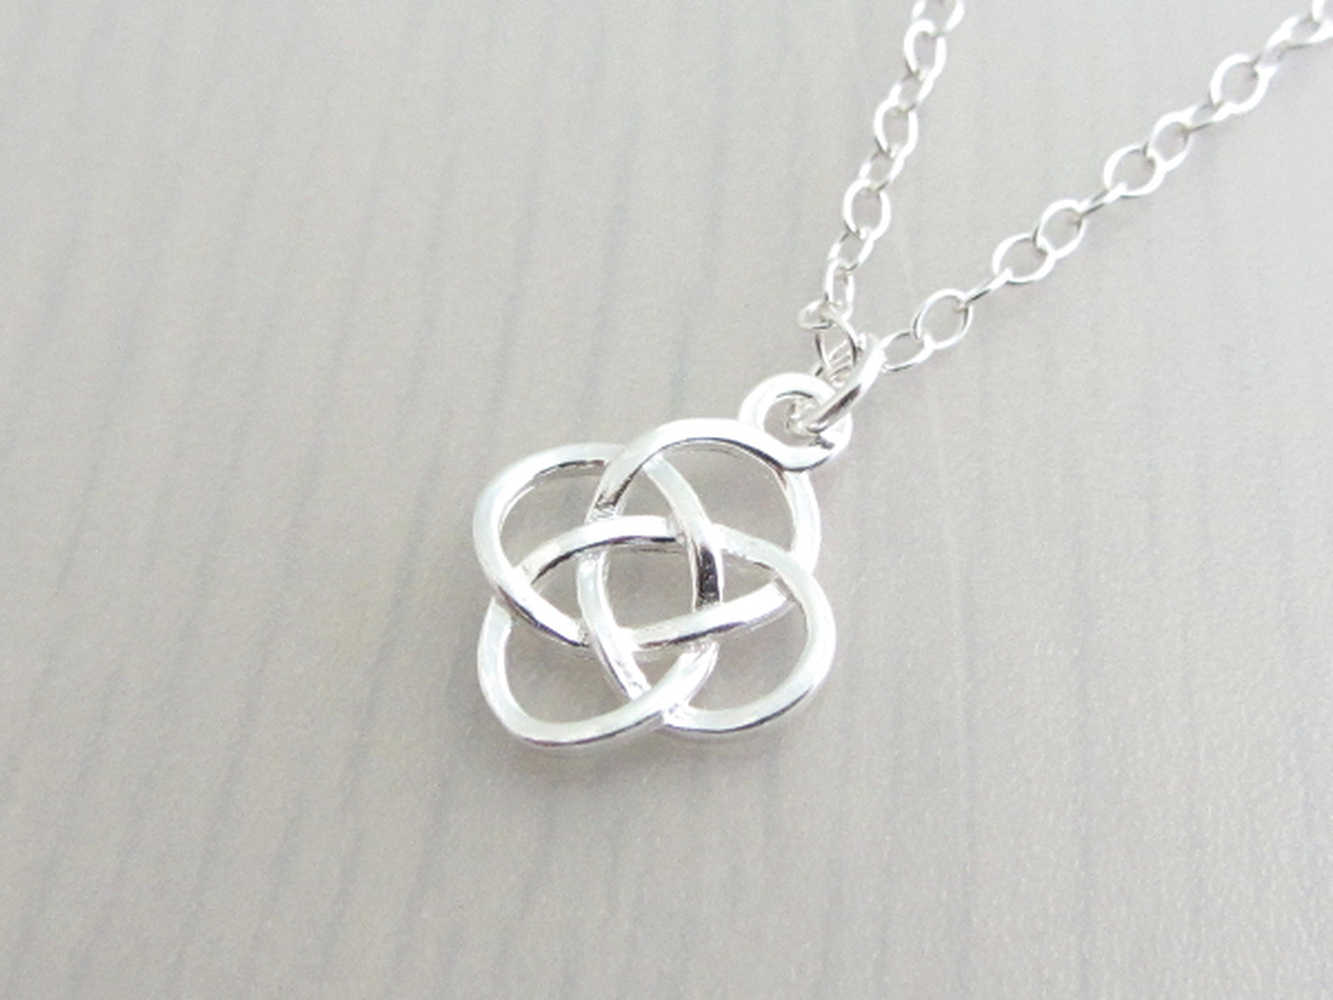 silver celtic knot charm on a silver chain